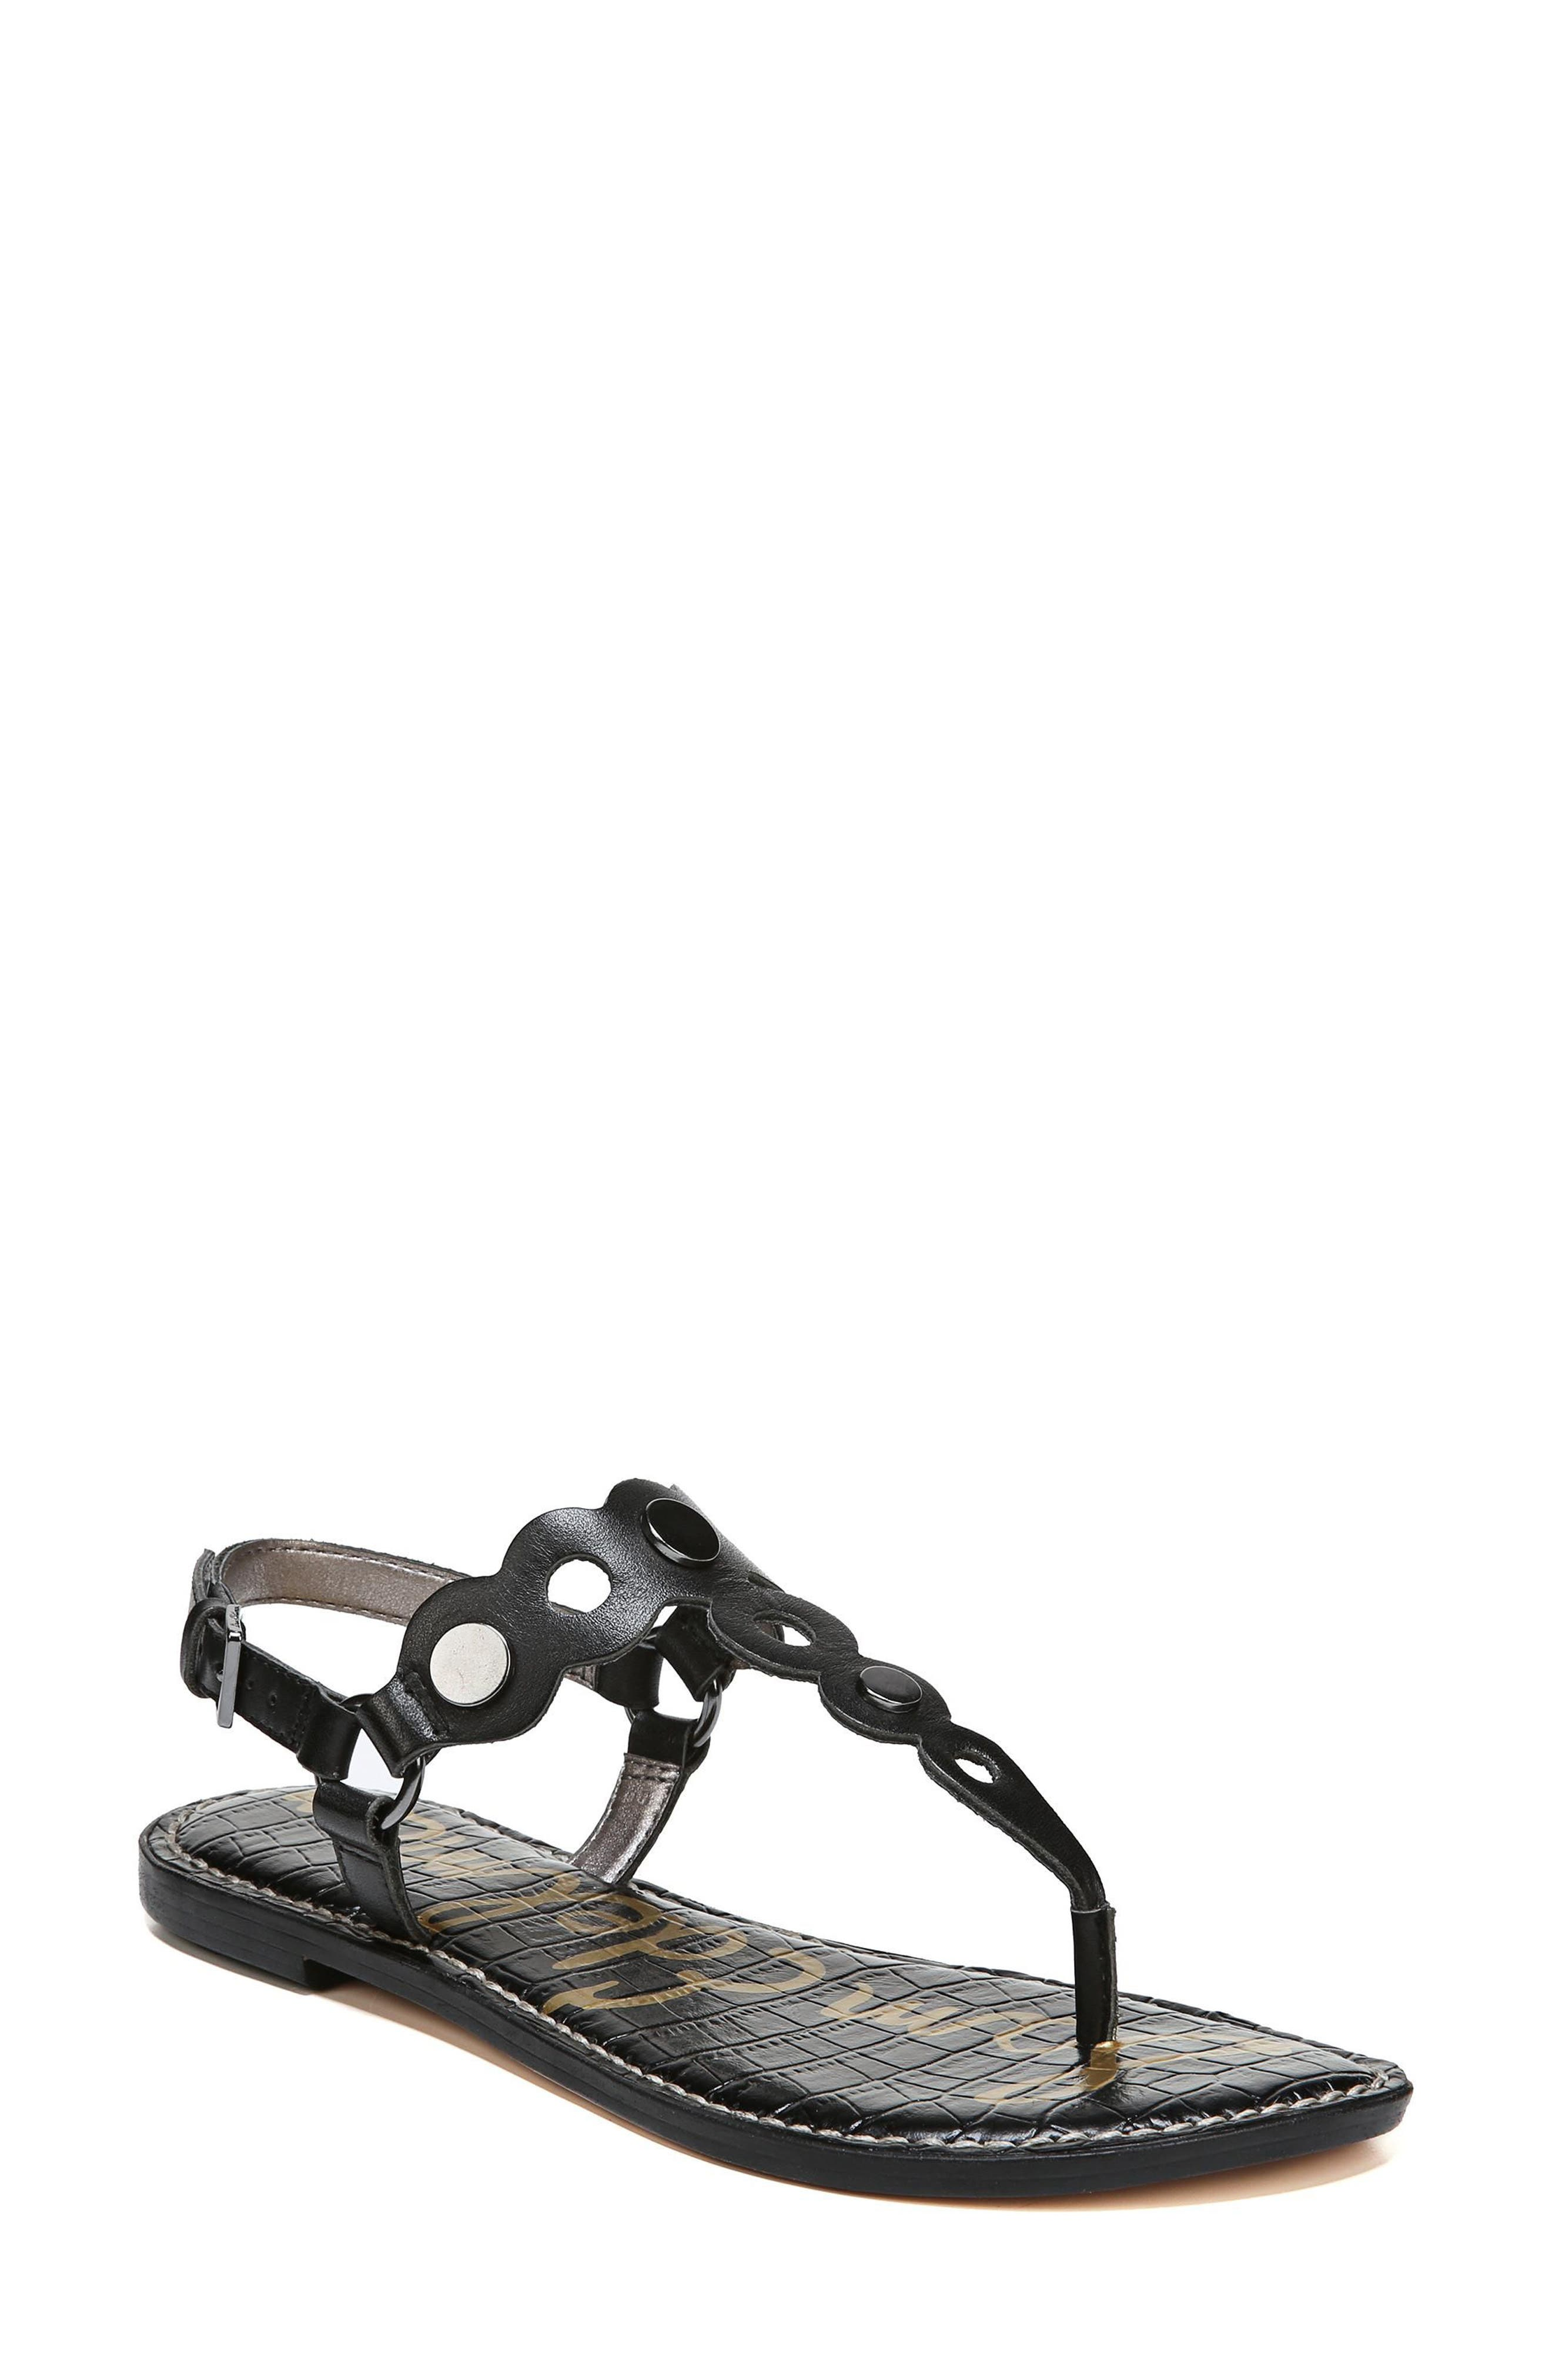 Gilly T-Strap Sandal,                             Main thumbnail 1, color,